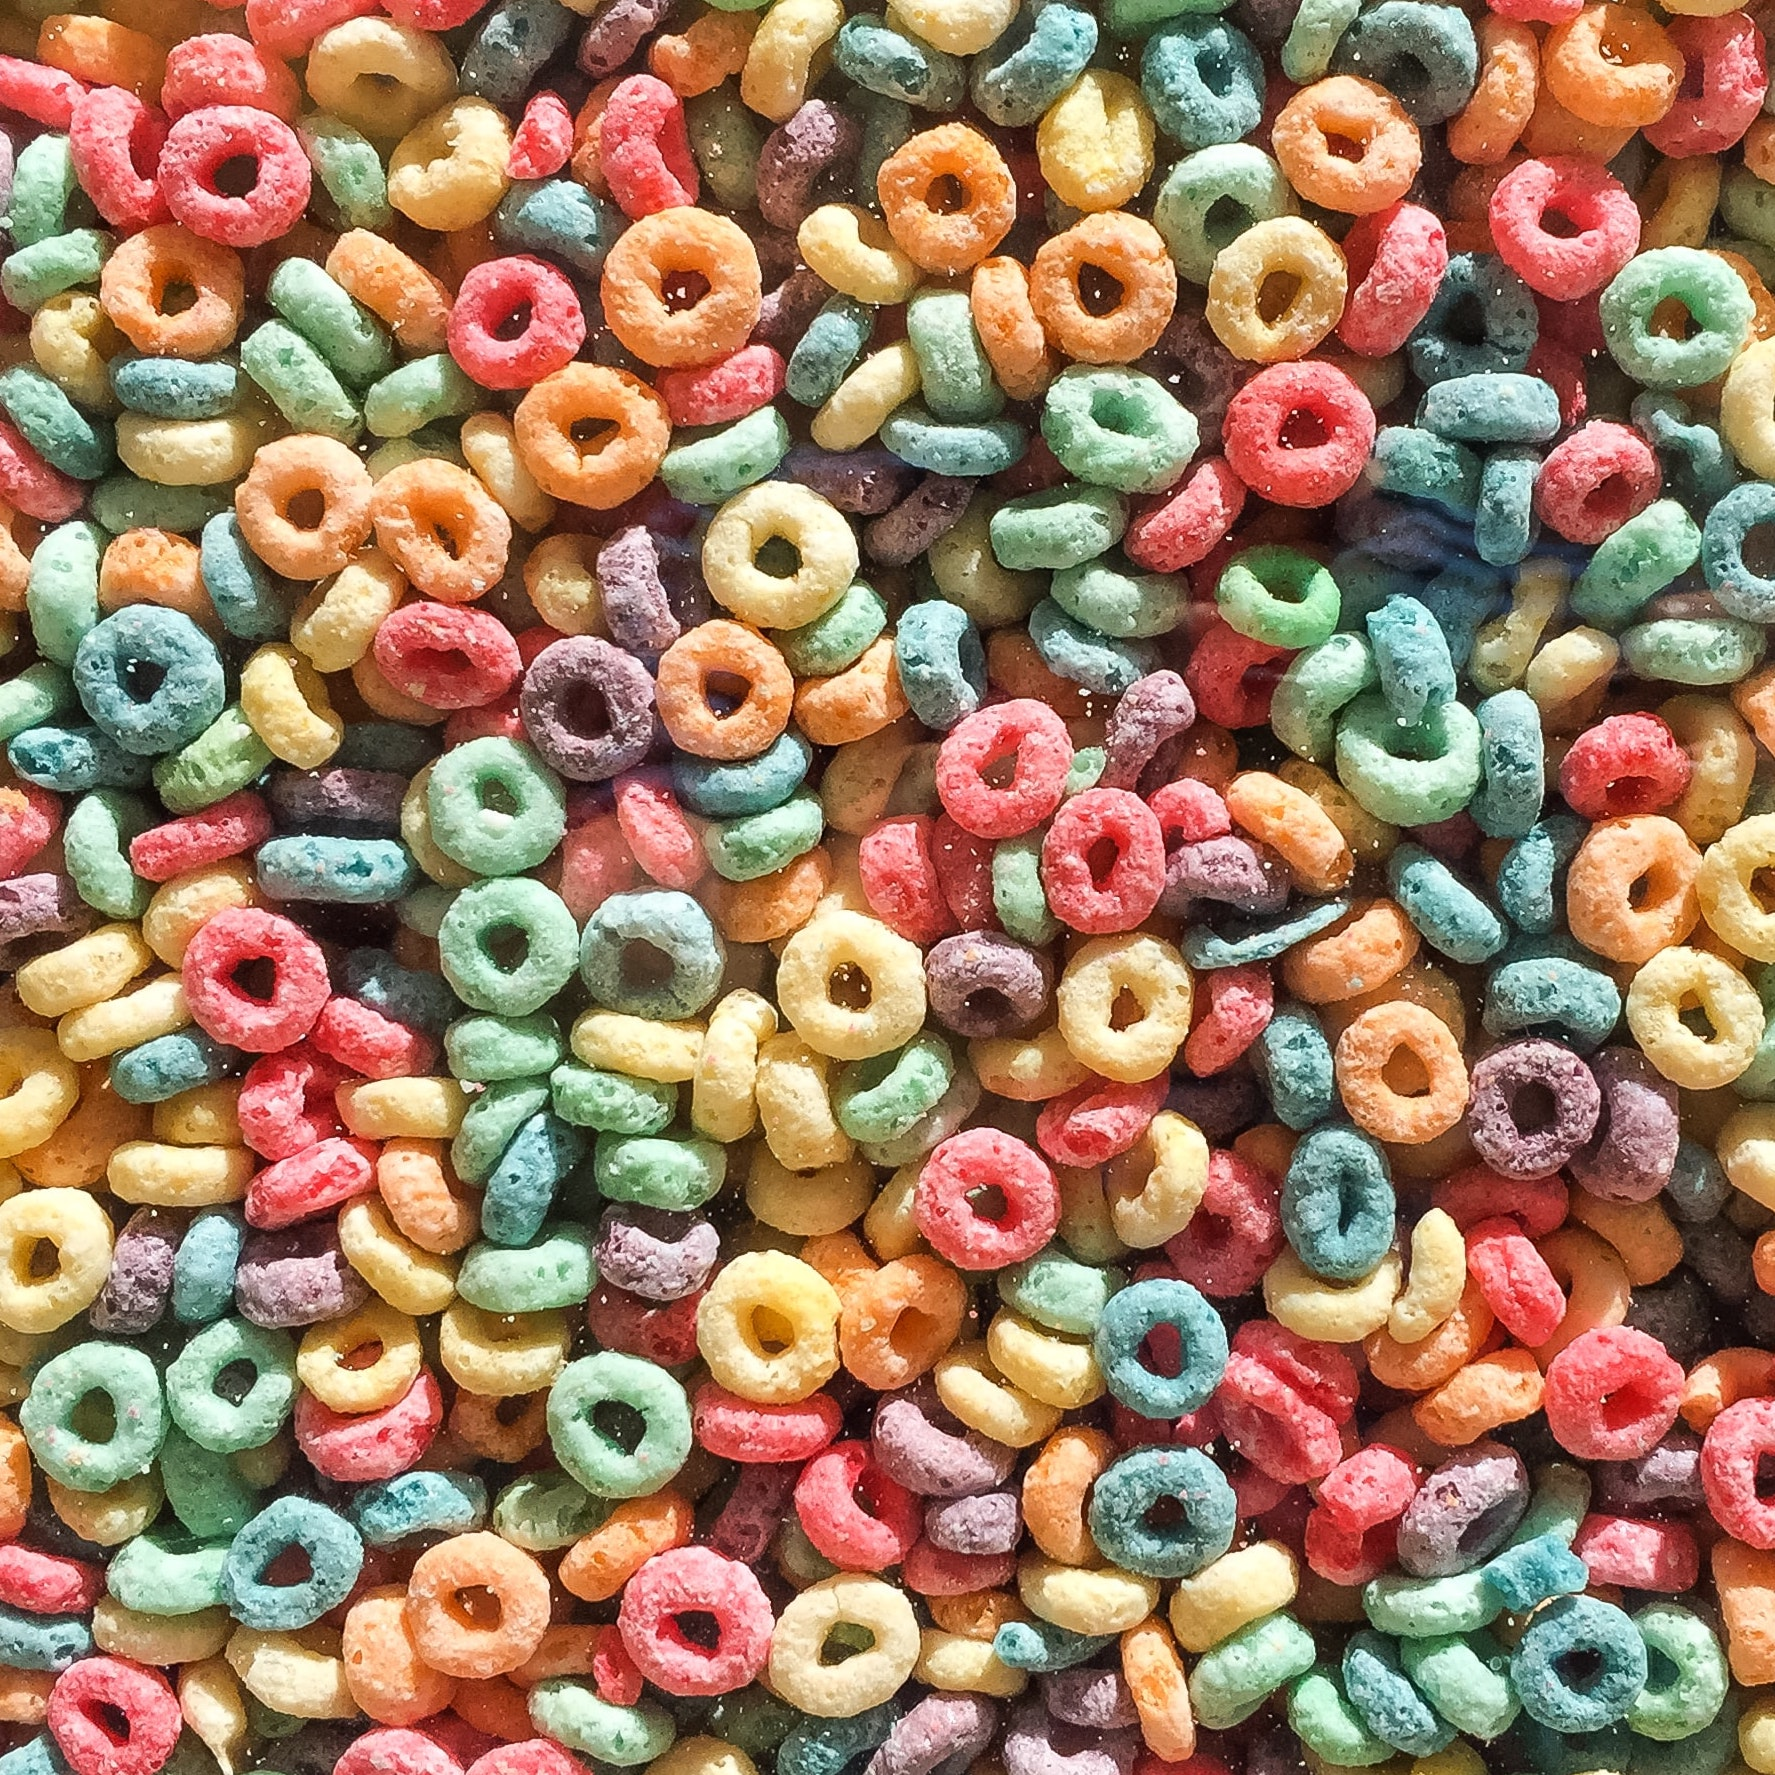 Why do all the flavours of Fruit Loops taste exactly the same?